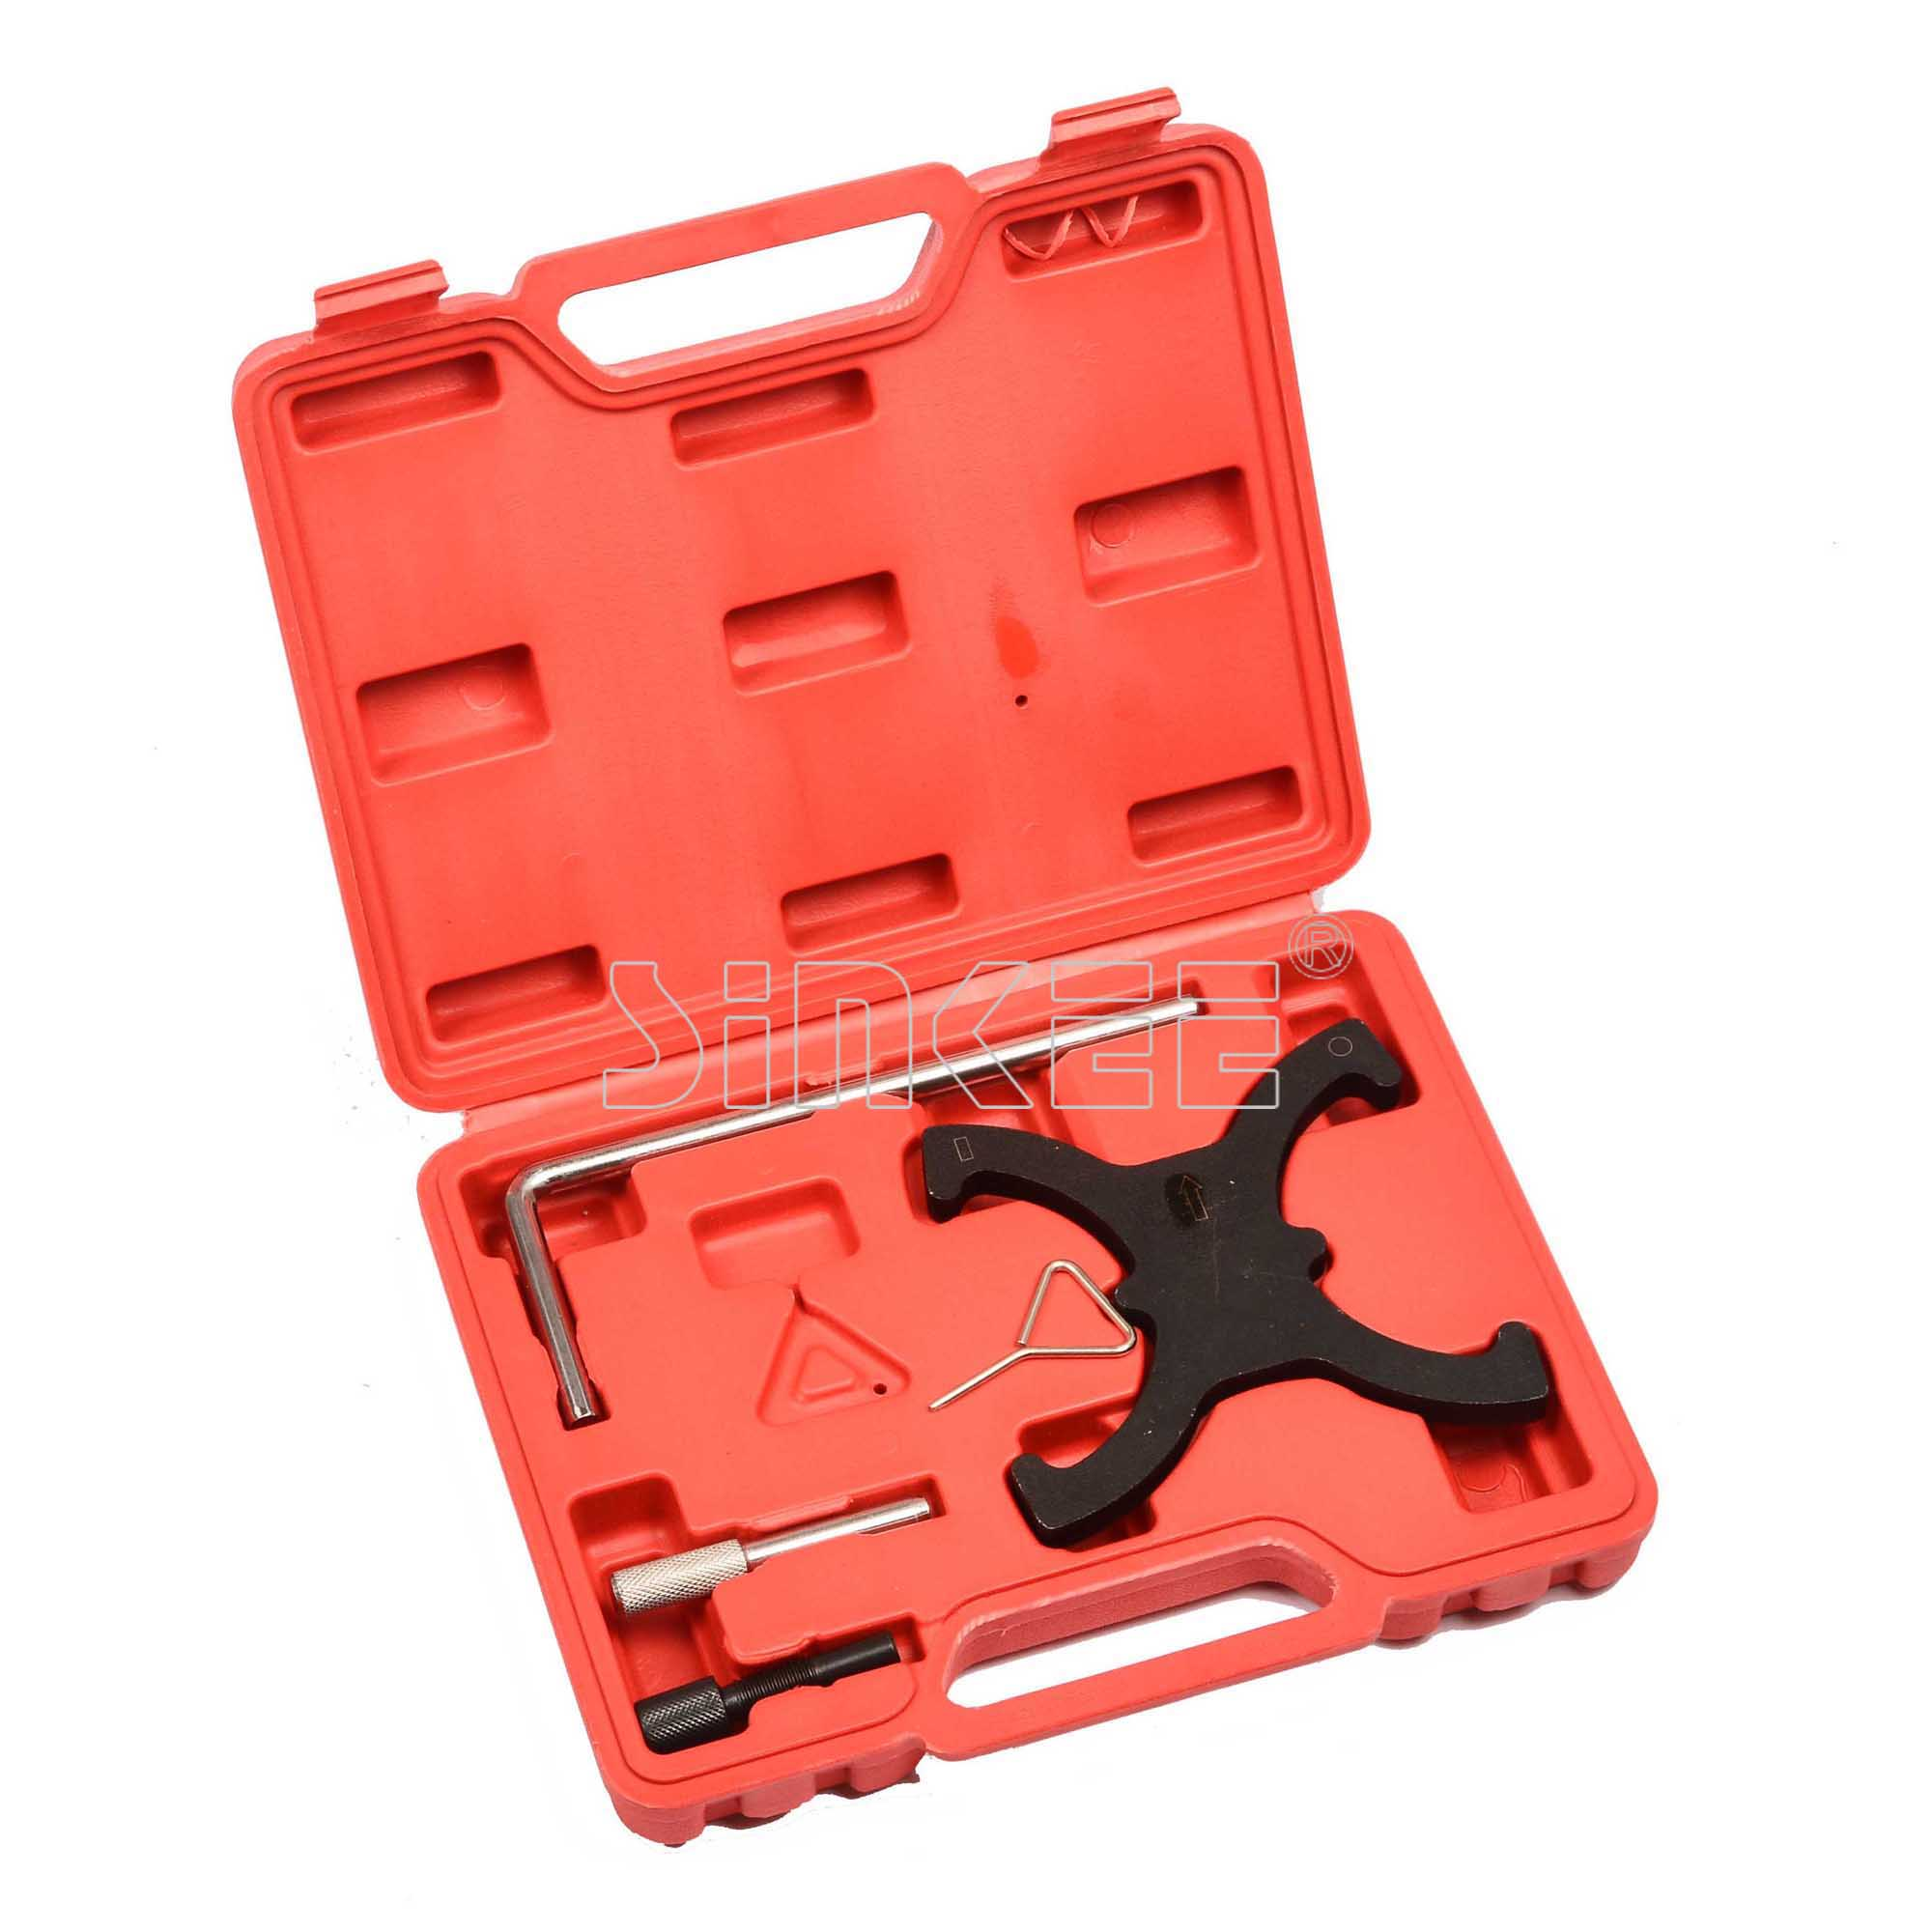 Petrol Engine Timing Camshaft Crankshaft Lock Tool For Ford Focus C MAX 1.6 TI-VCT cl160162 citilux